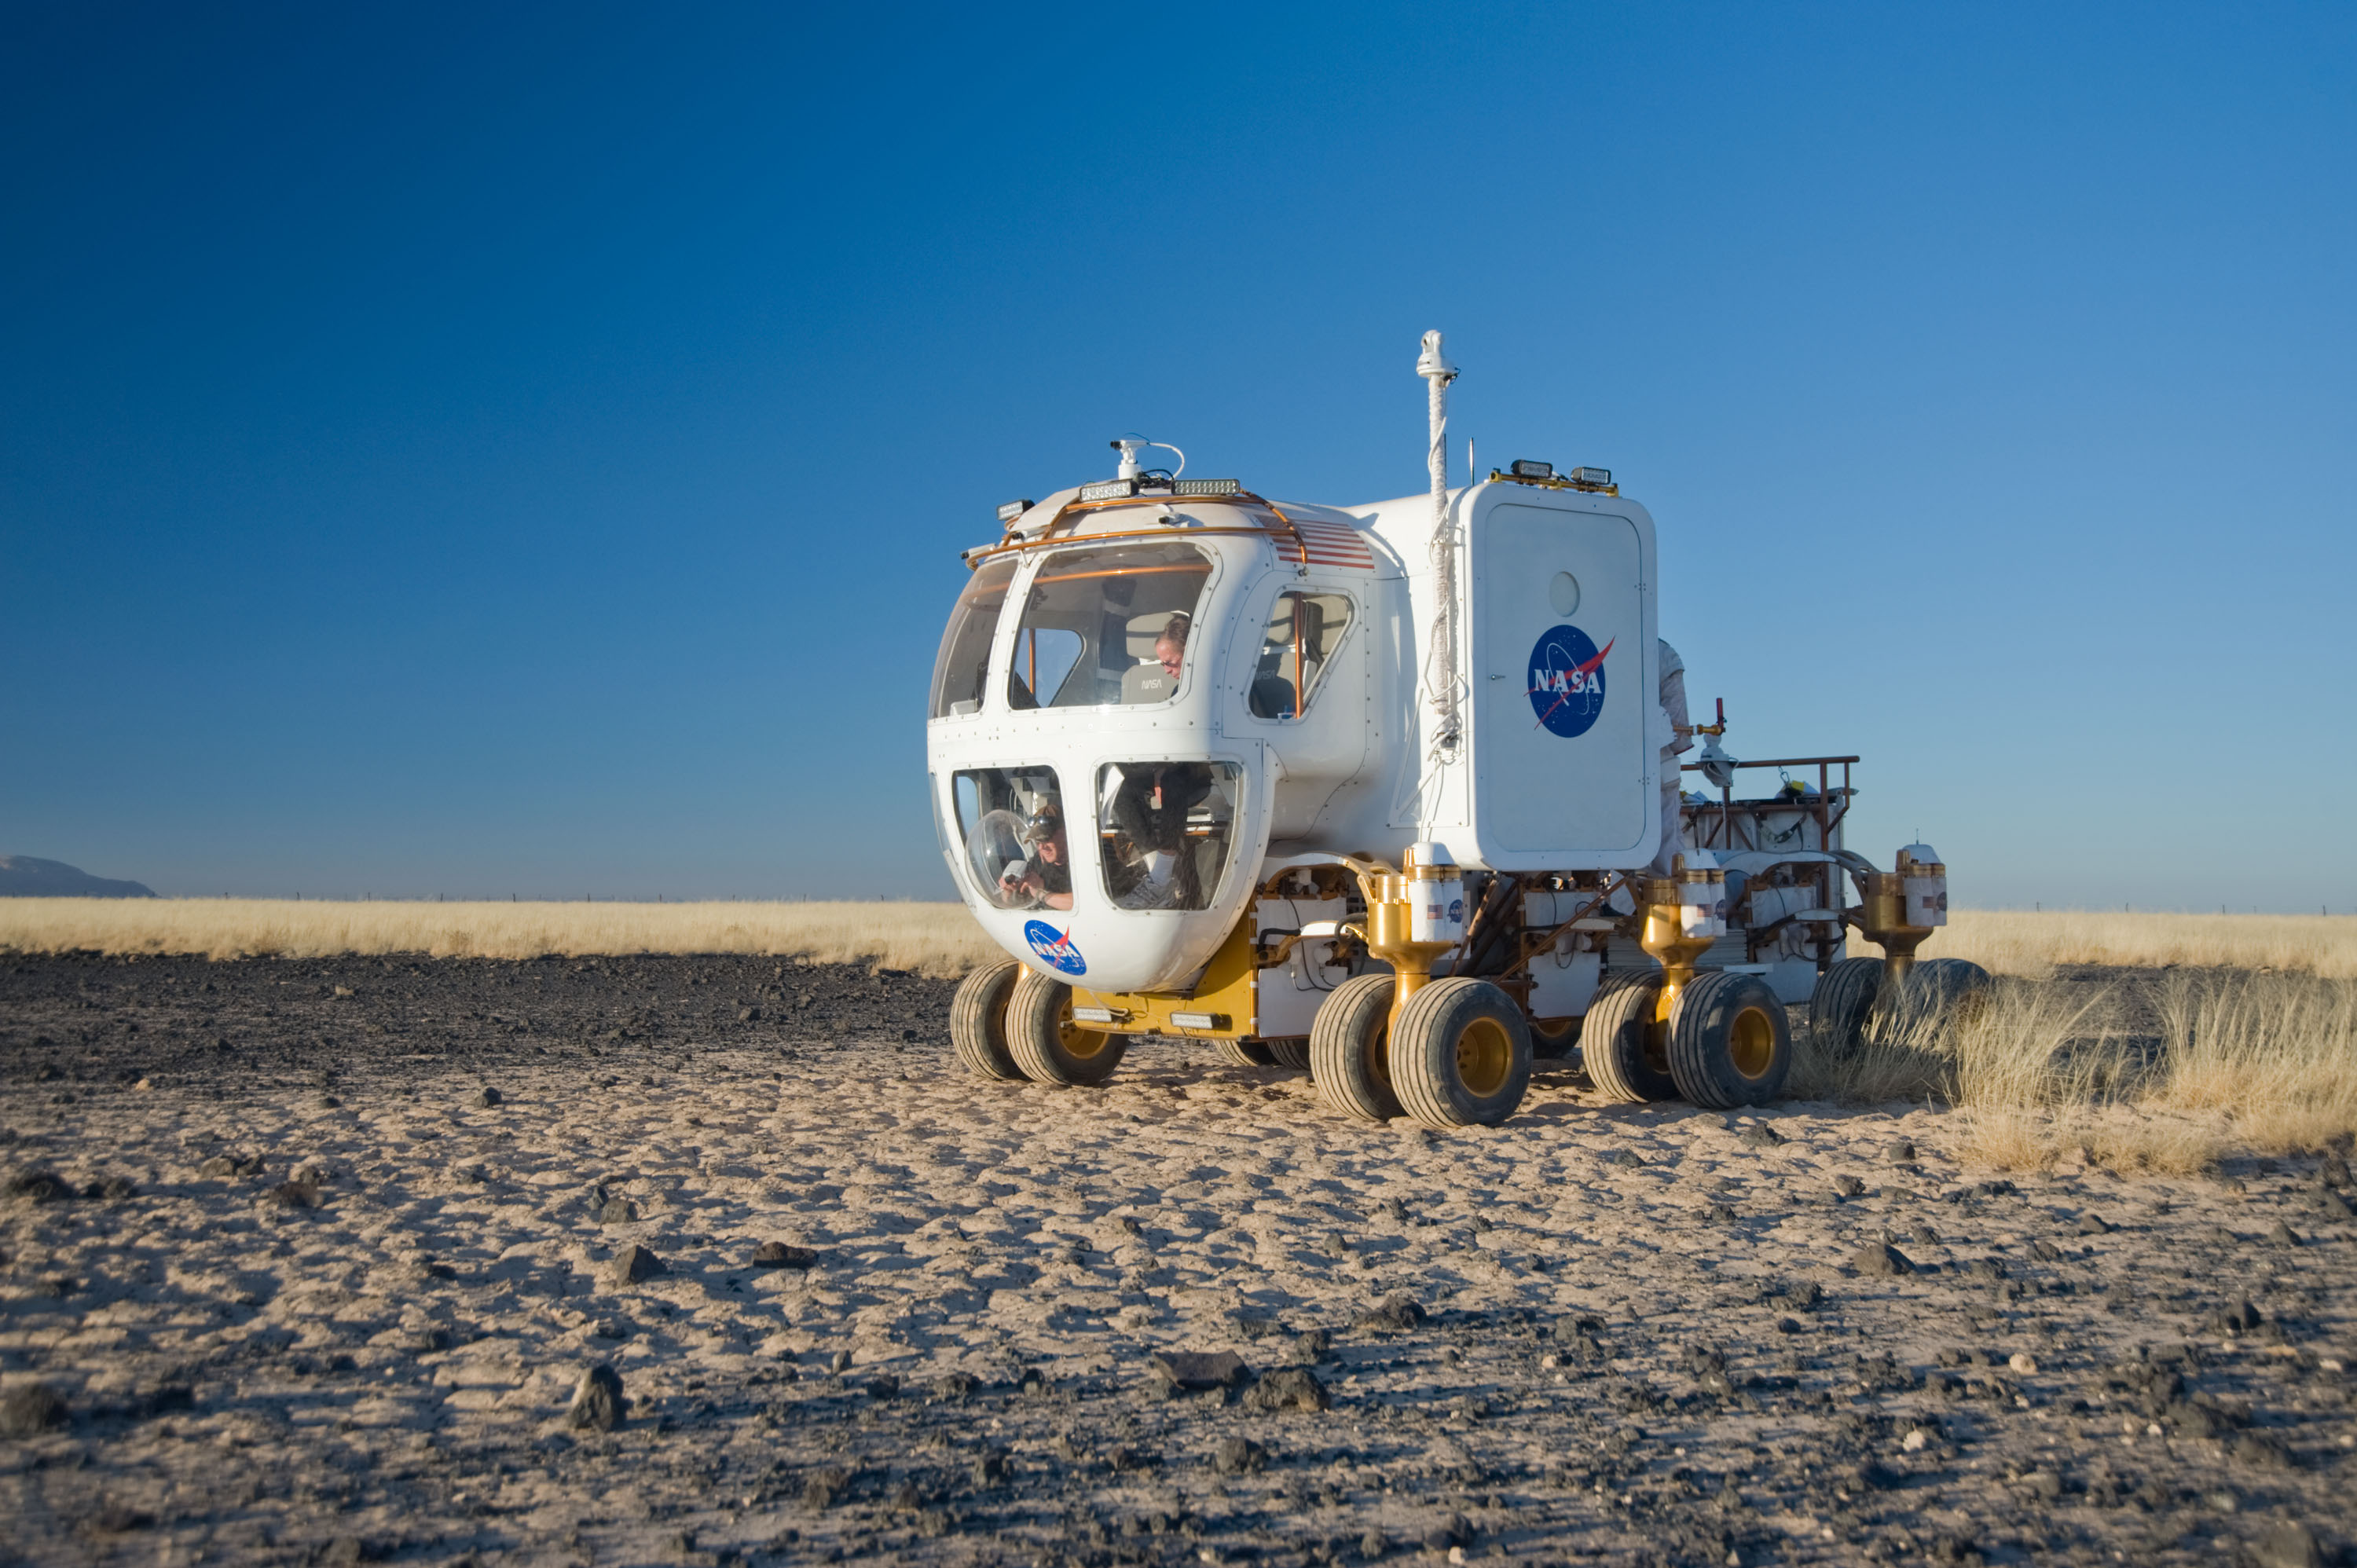 nasa crew transfer vehicle - photo #34